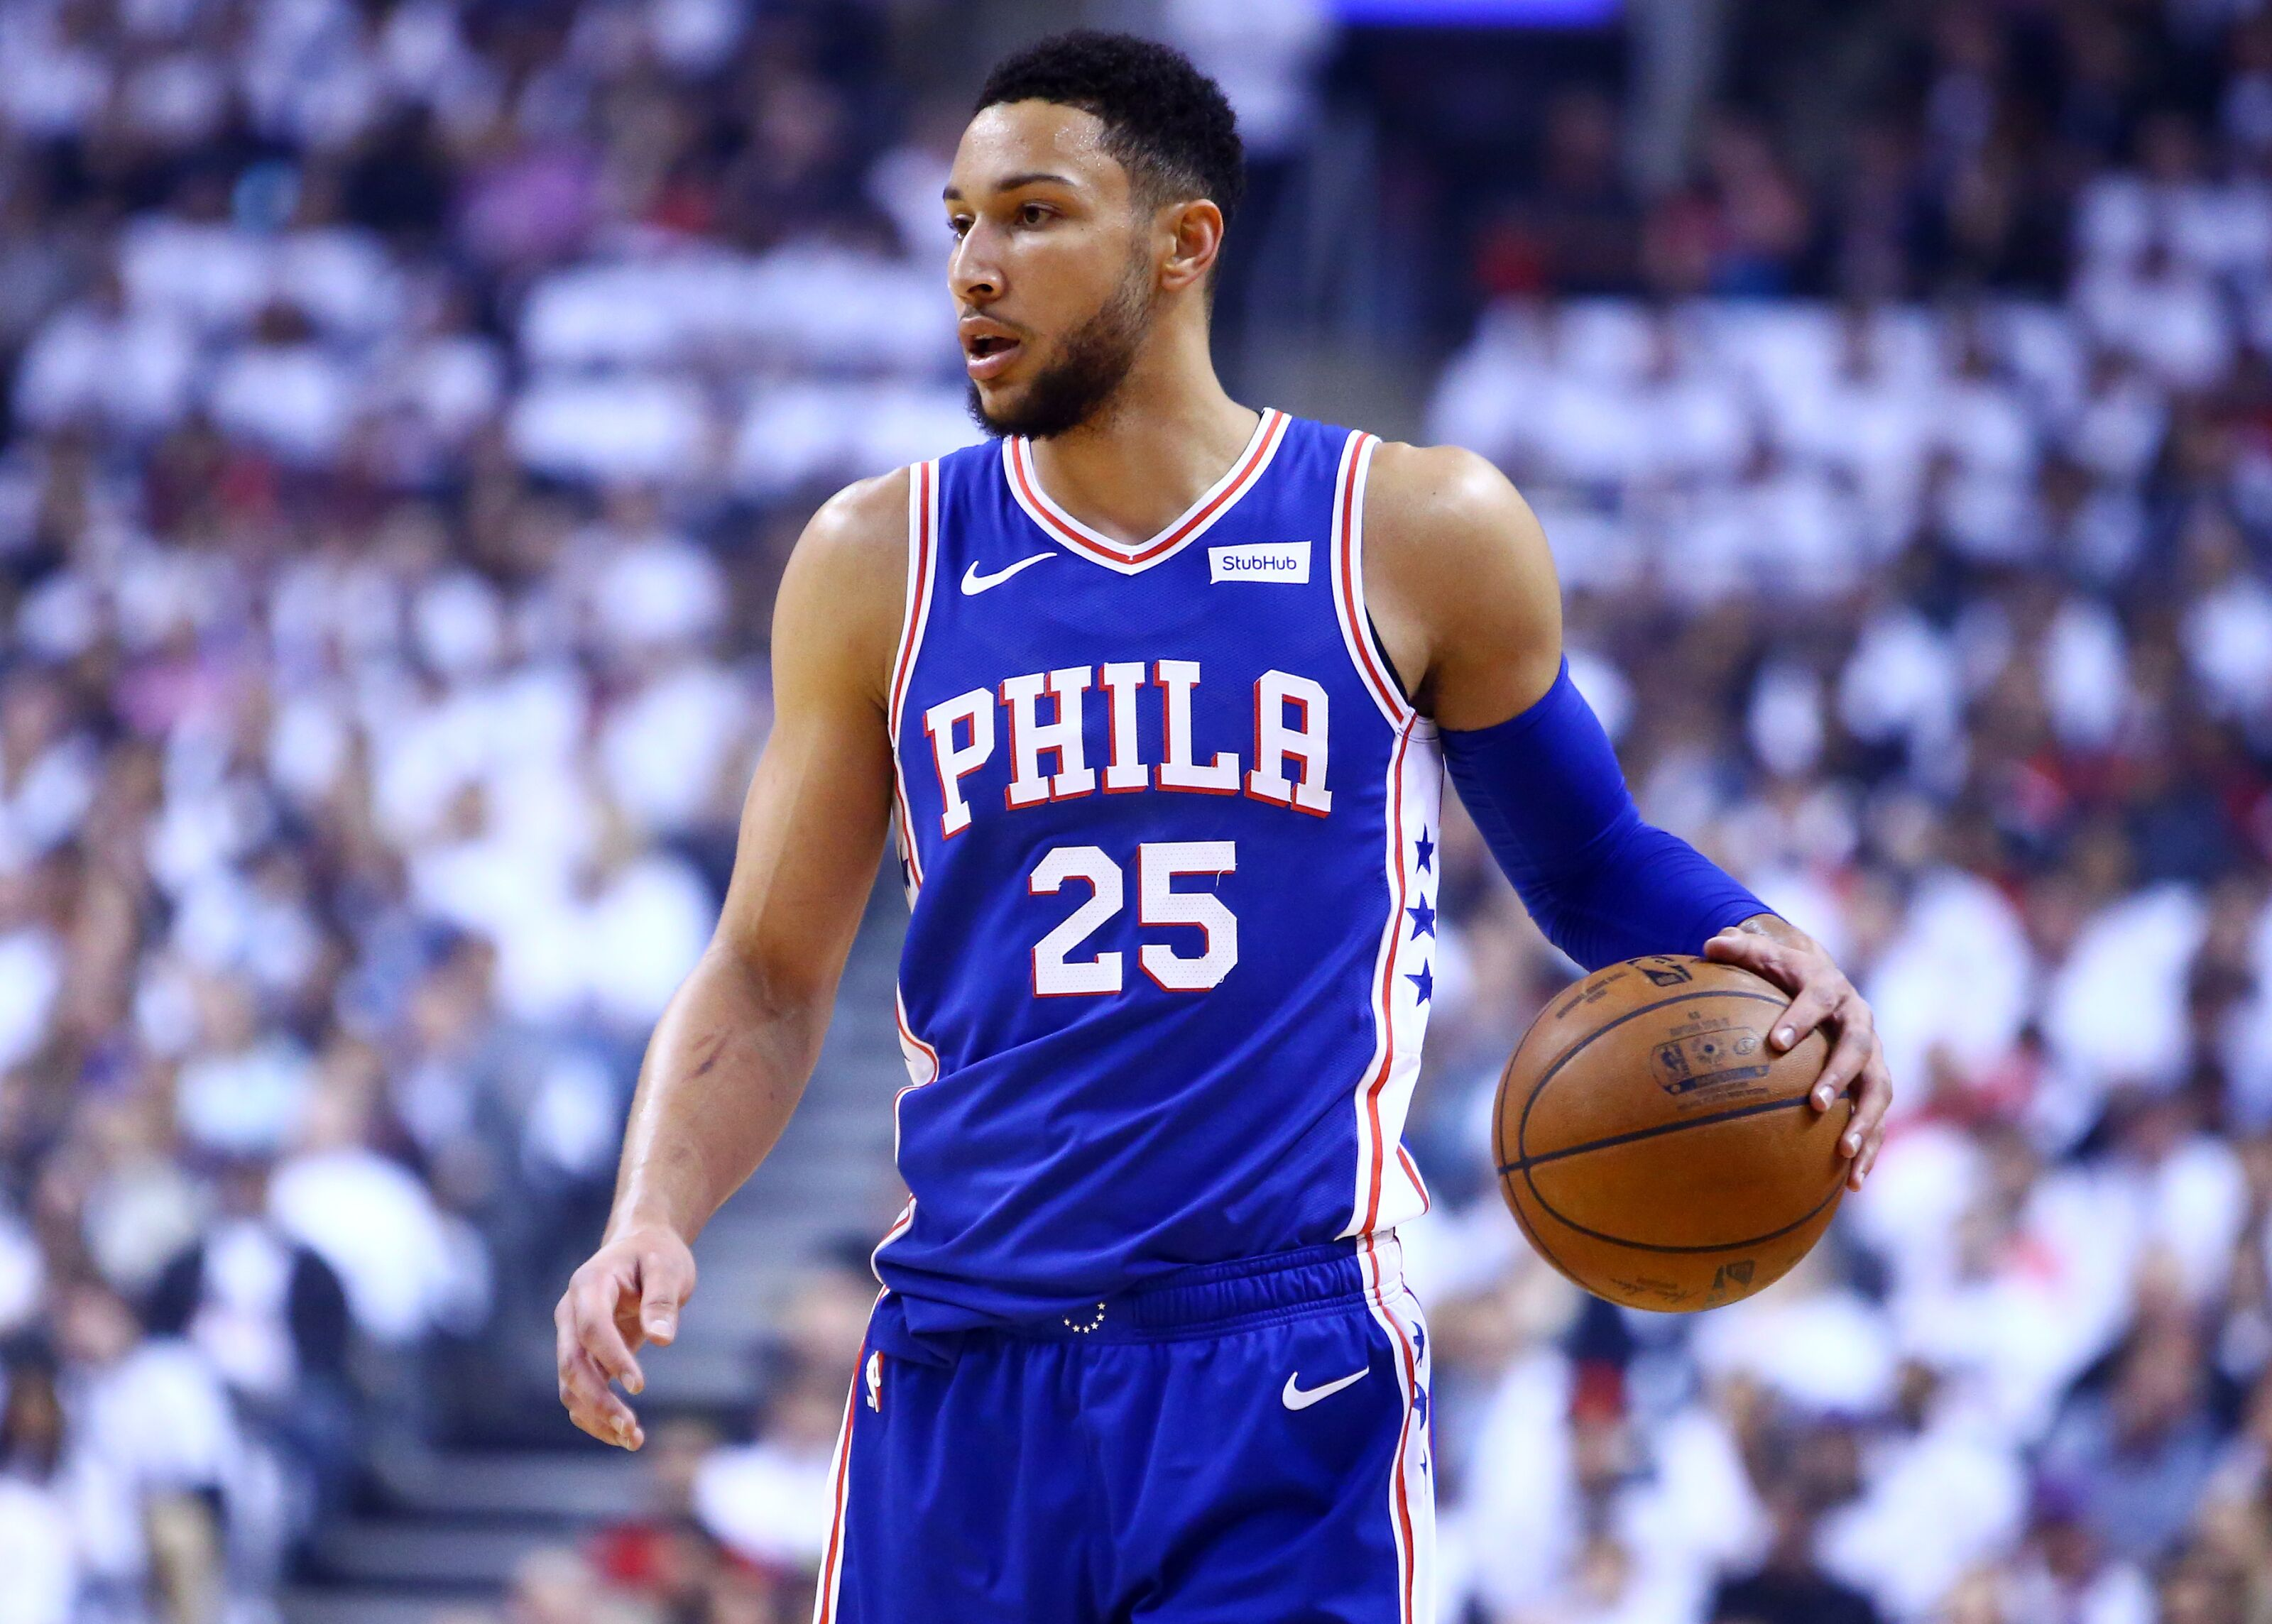 online retailer 051dc 1668f Philadelphia 76ers: The return of Ben Simmons' MIA jump shot